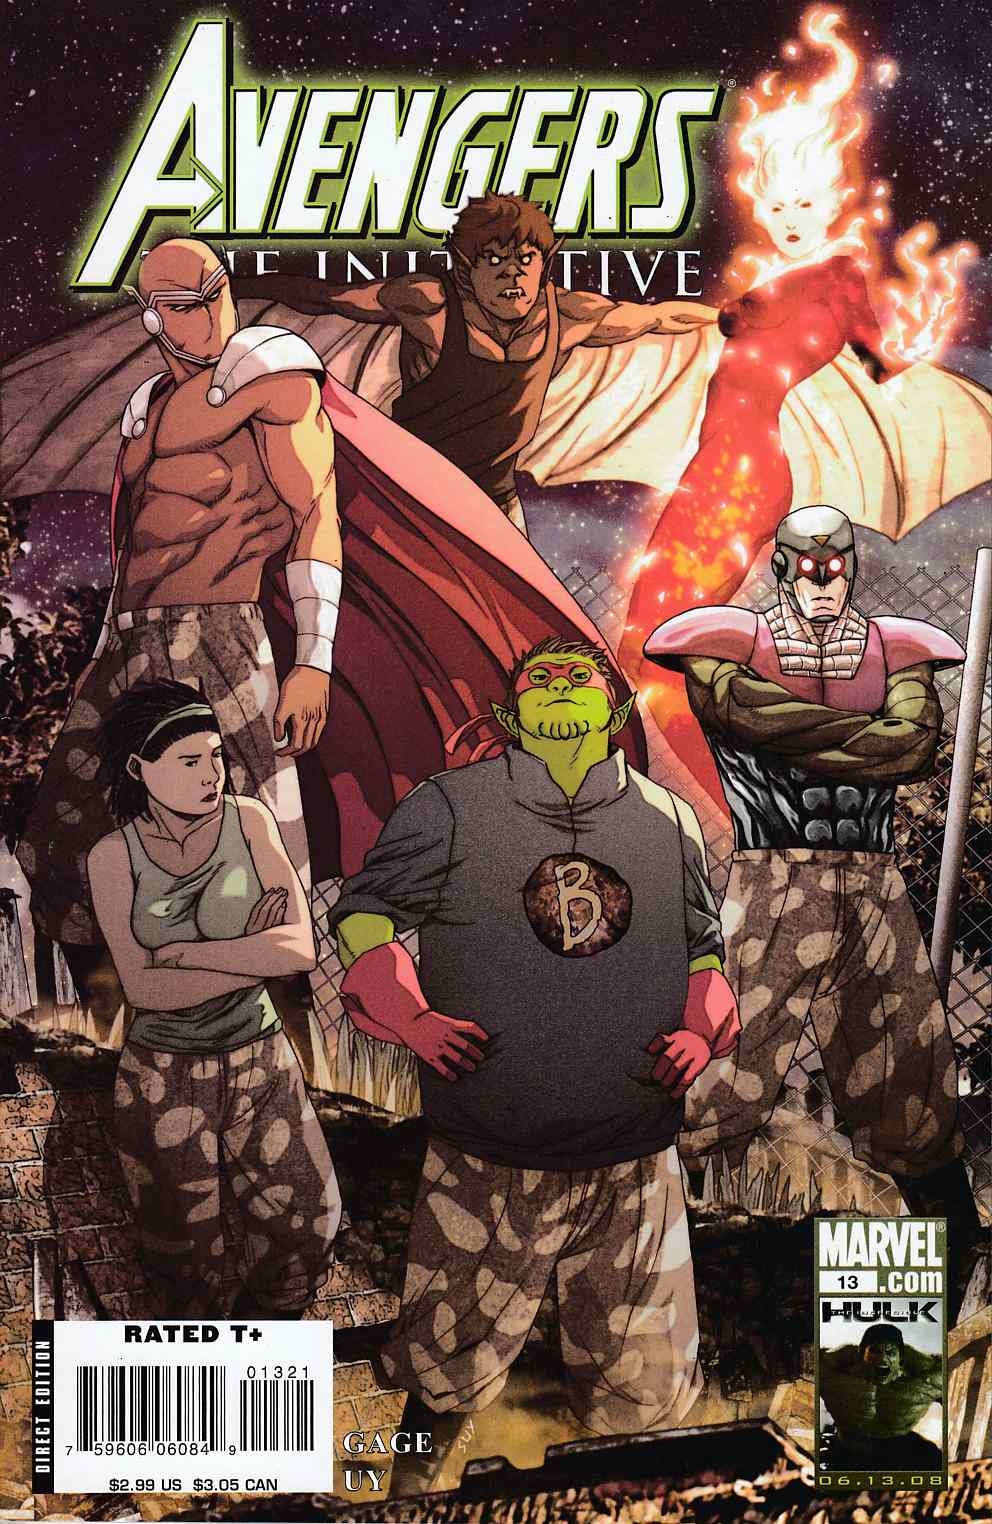 Avengers Initiative #13 Skrull Variant Cover Near Mint (9.4) [Marvel Comic]